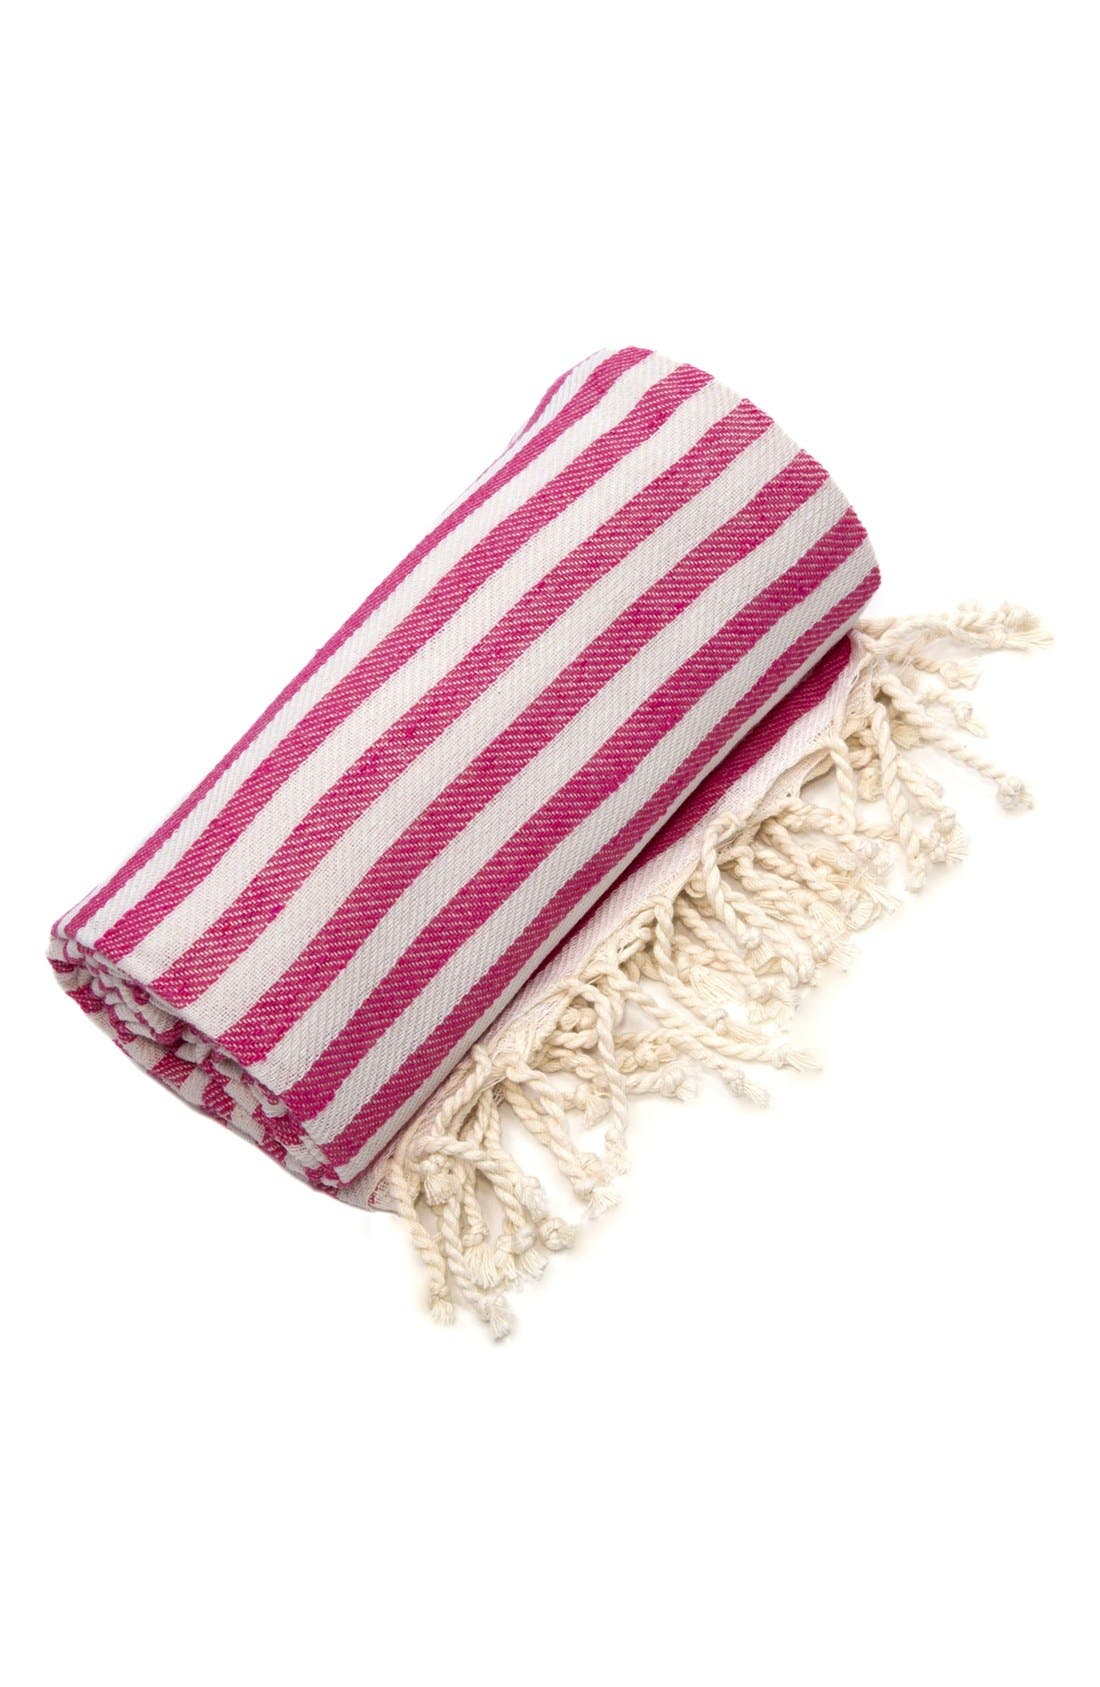 Alternate Image 2  - Linum Home Textiles 'Fun in the Sun' Turkish Pestemal Towel